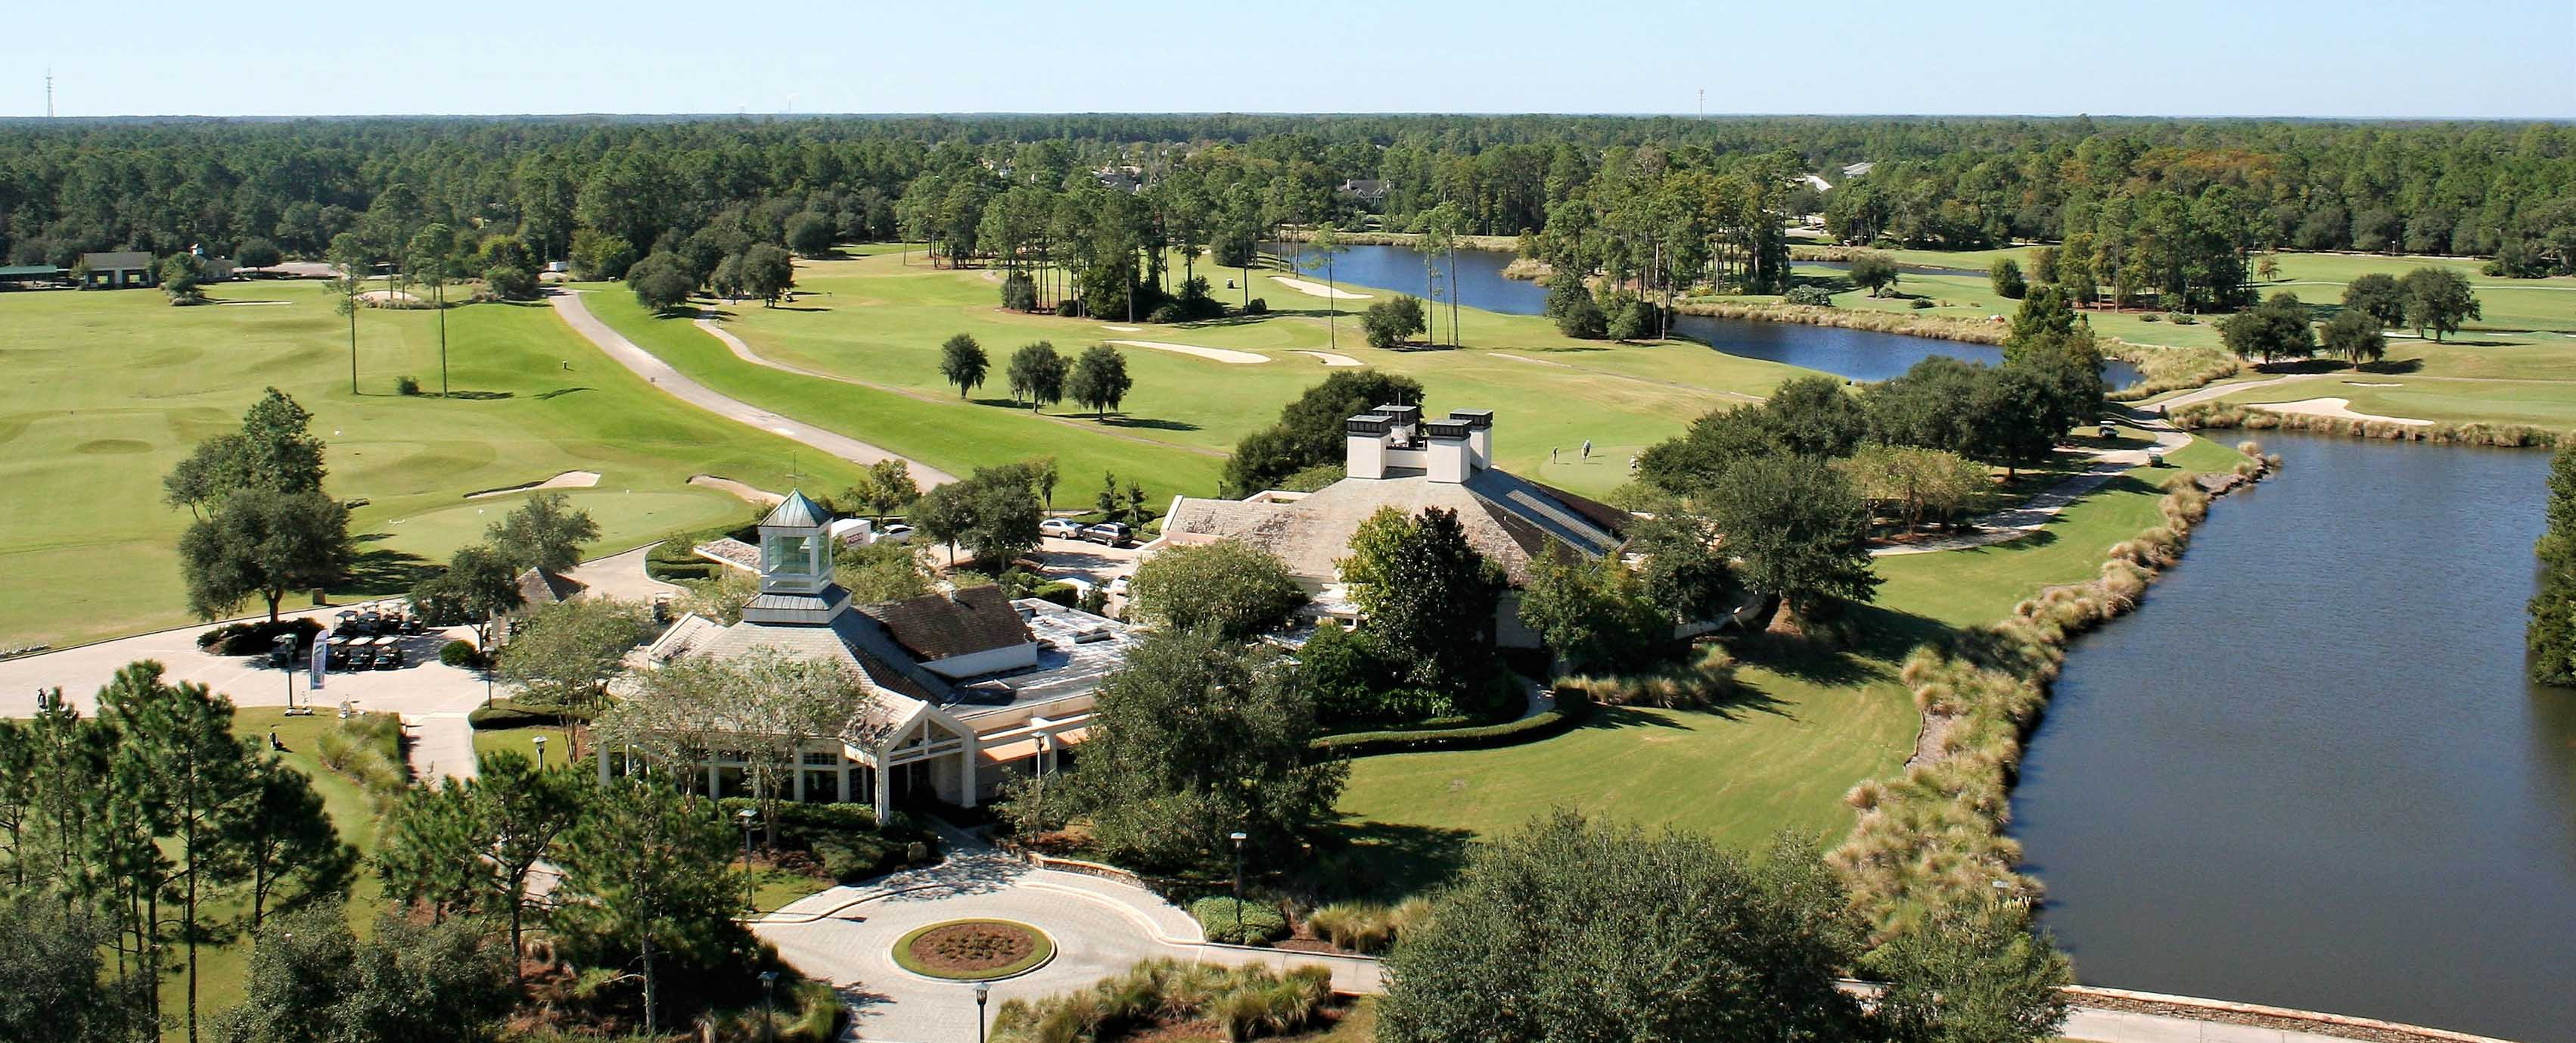 Renaissance World Golf Village Hotel view